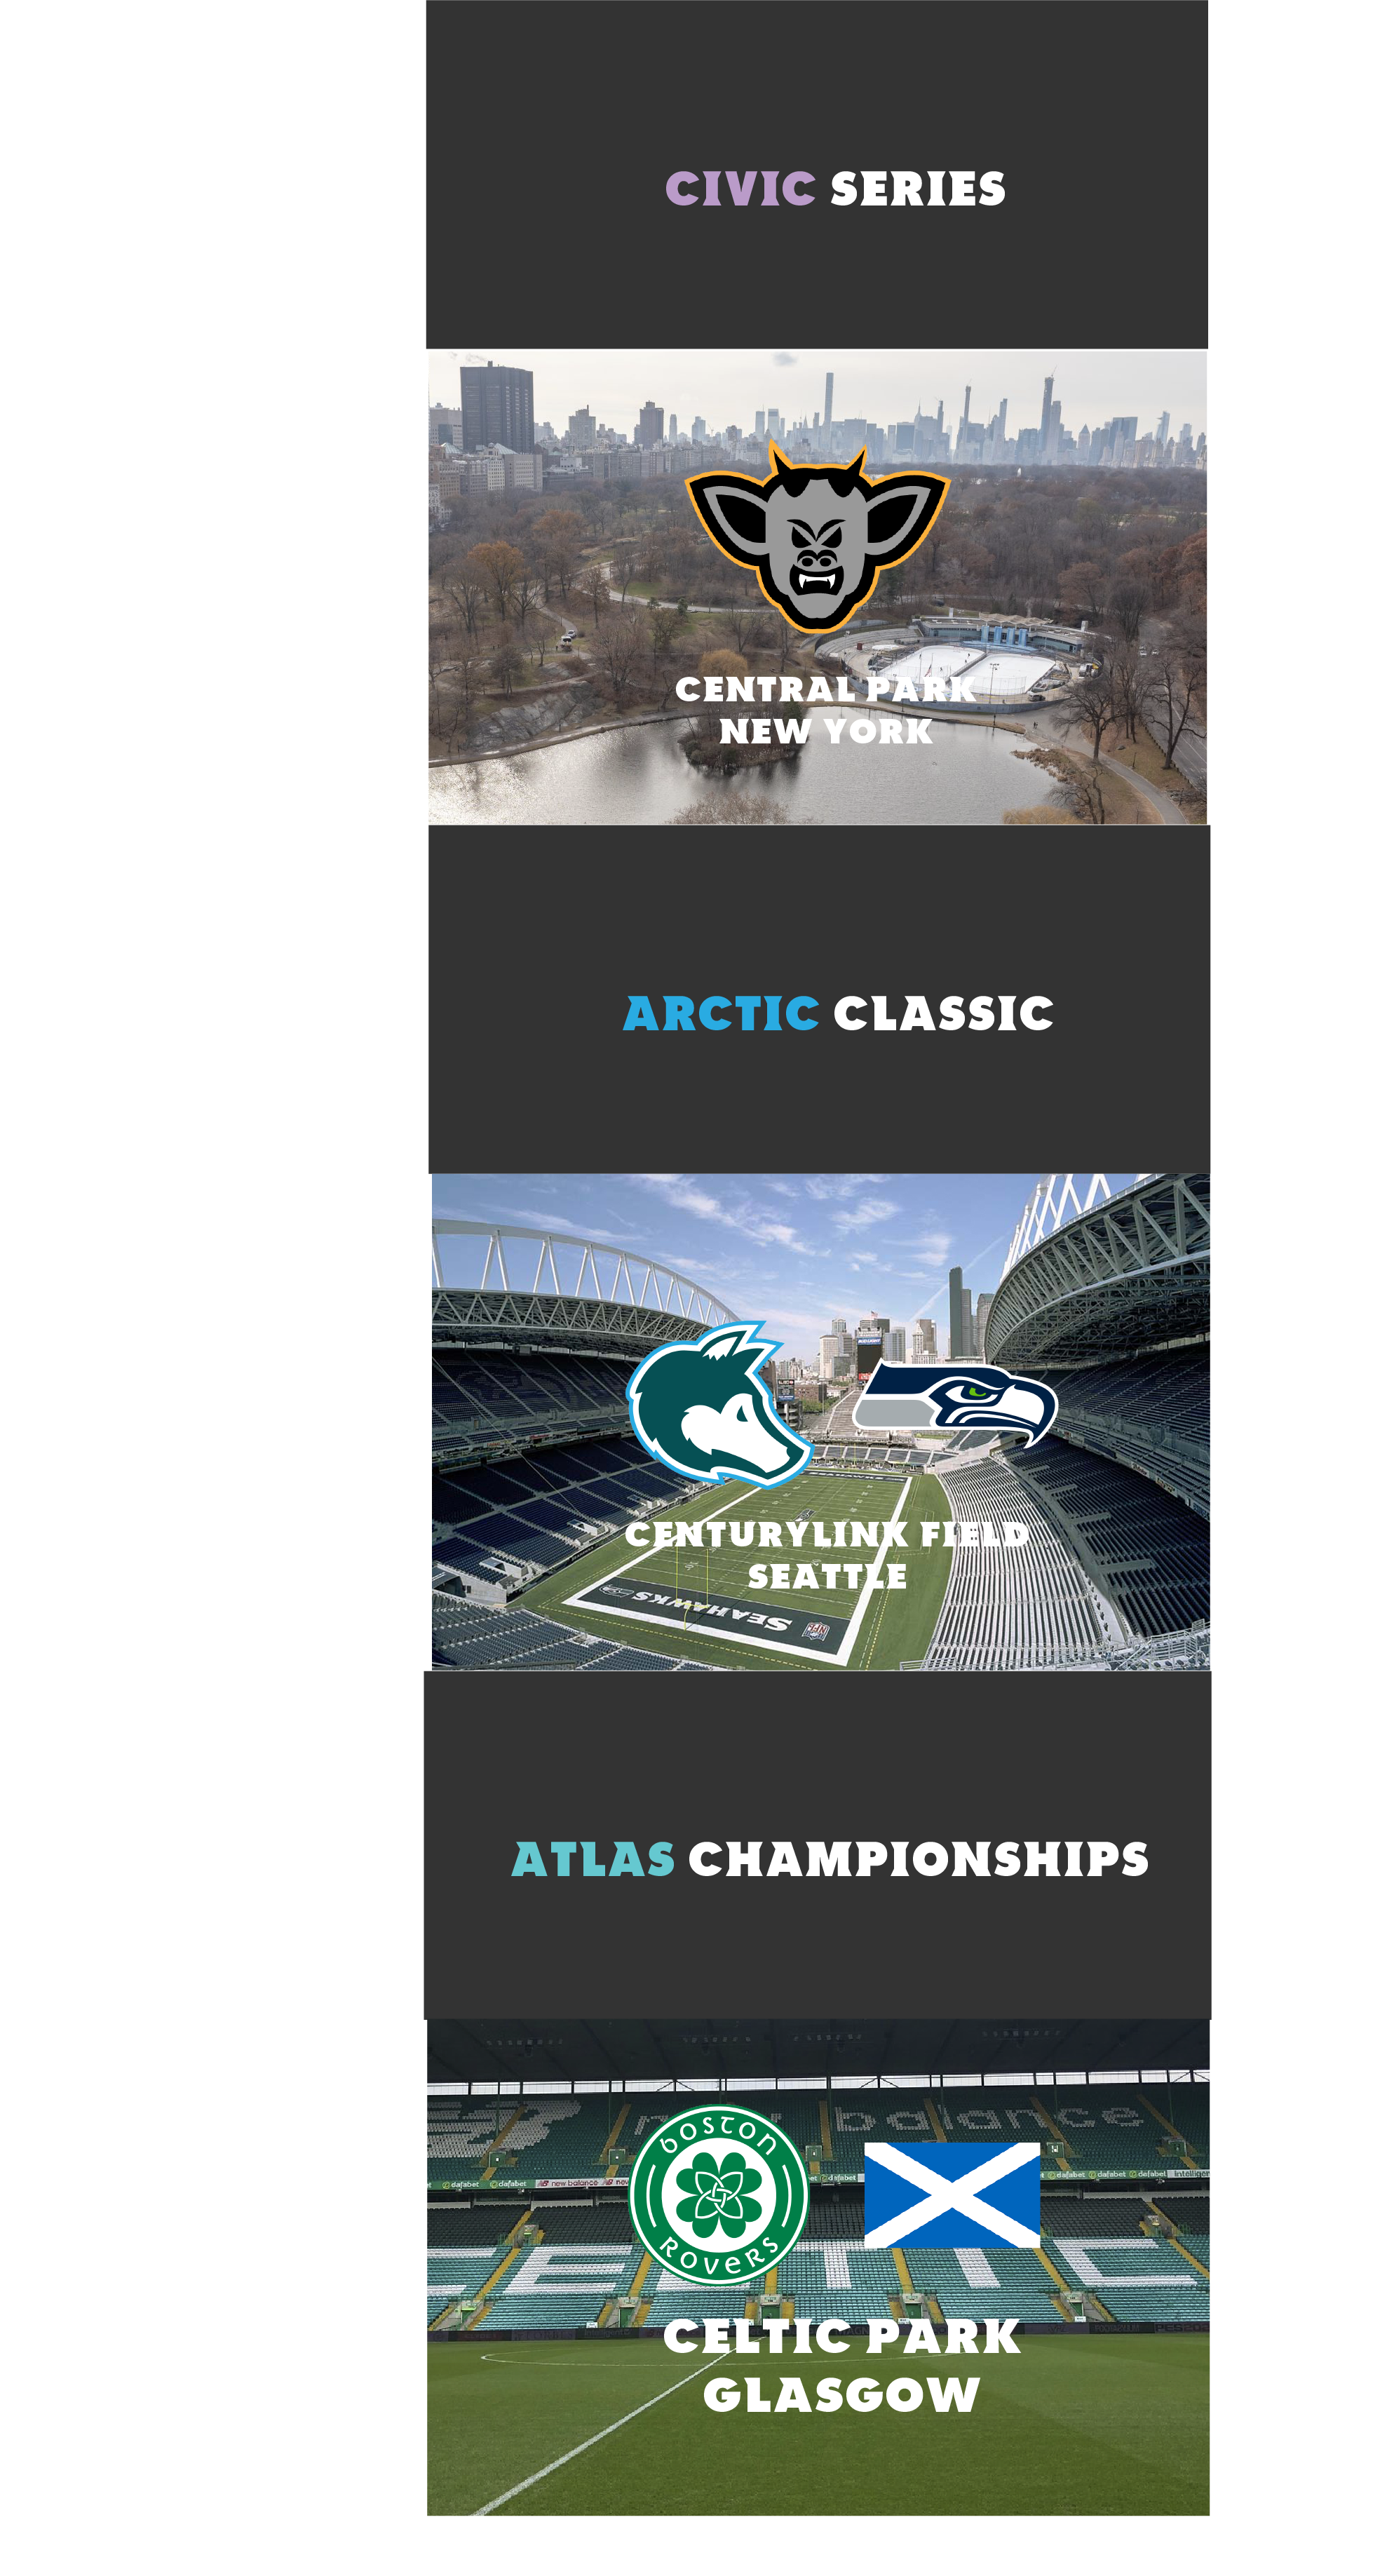 https://i.ibb.co/dcGMcWp/Outdoor-Game-Finals.png